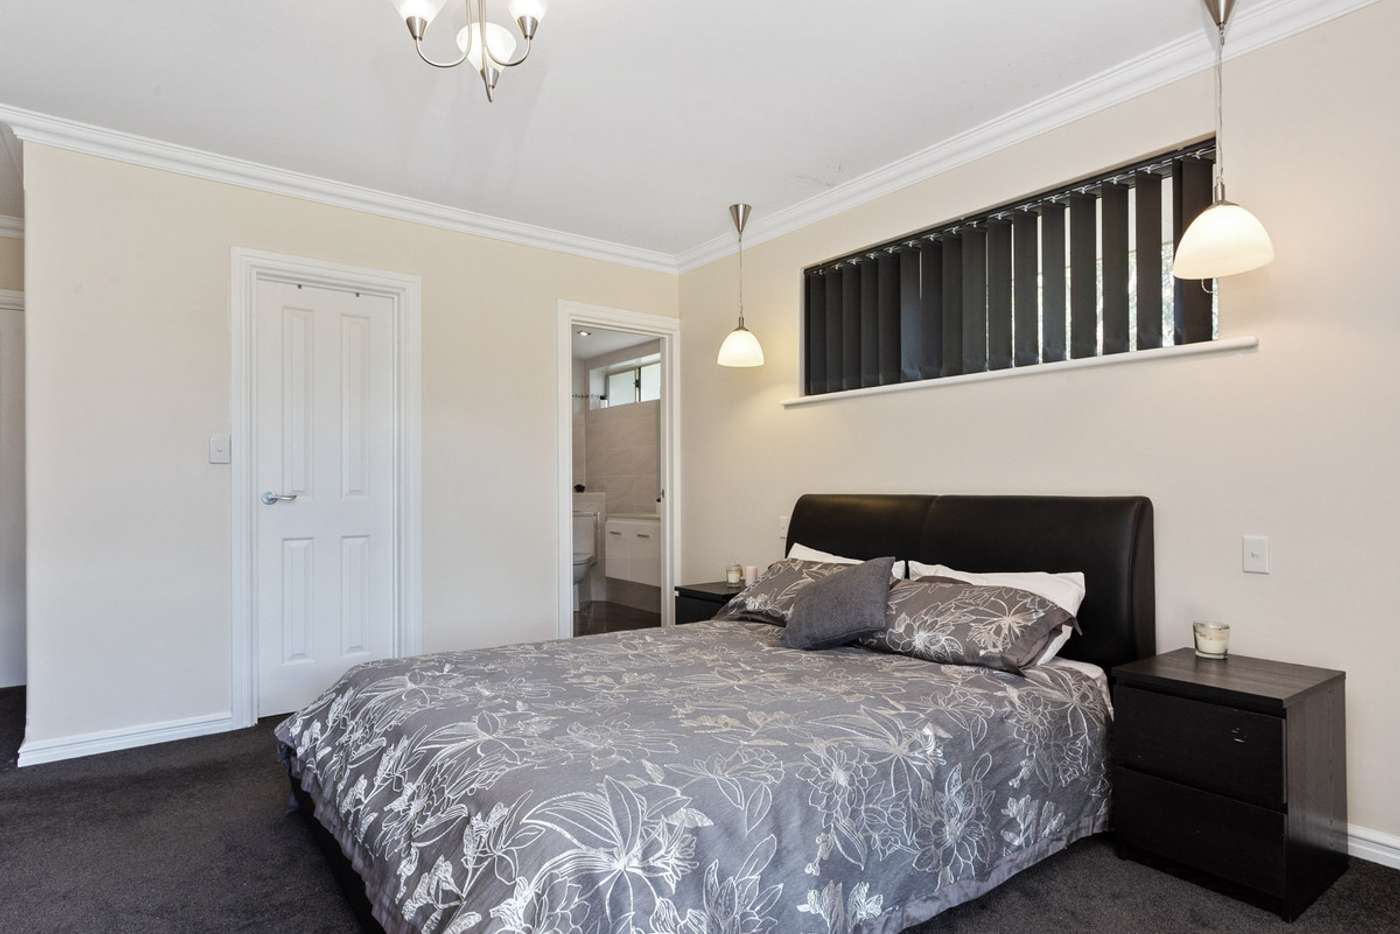 Fifth view of Homely house listing, 9 Wallangarra Drive, Bedfordale WA 6112